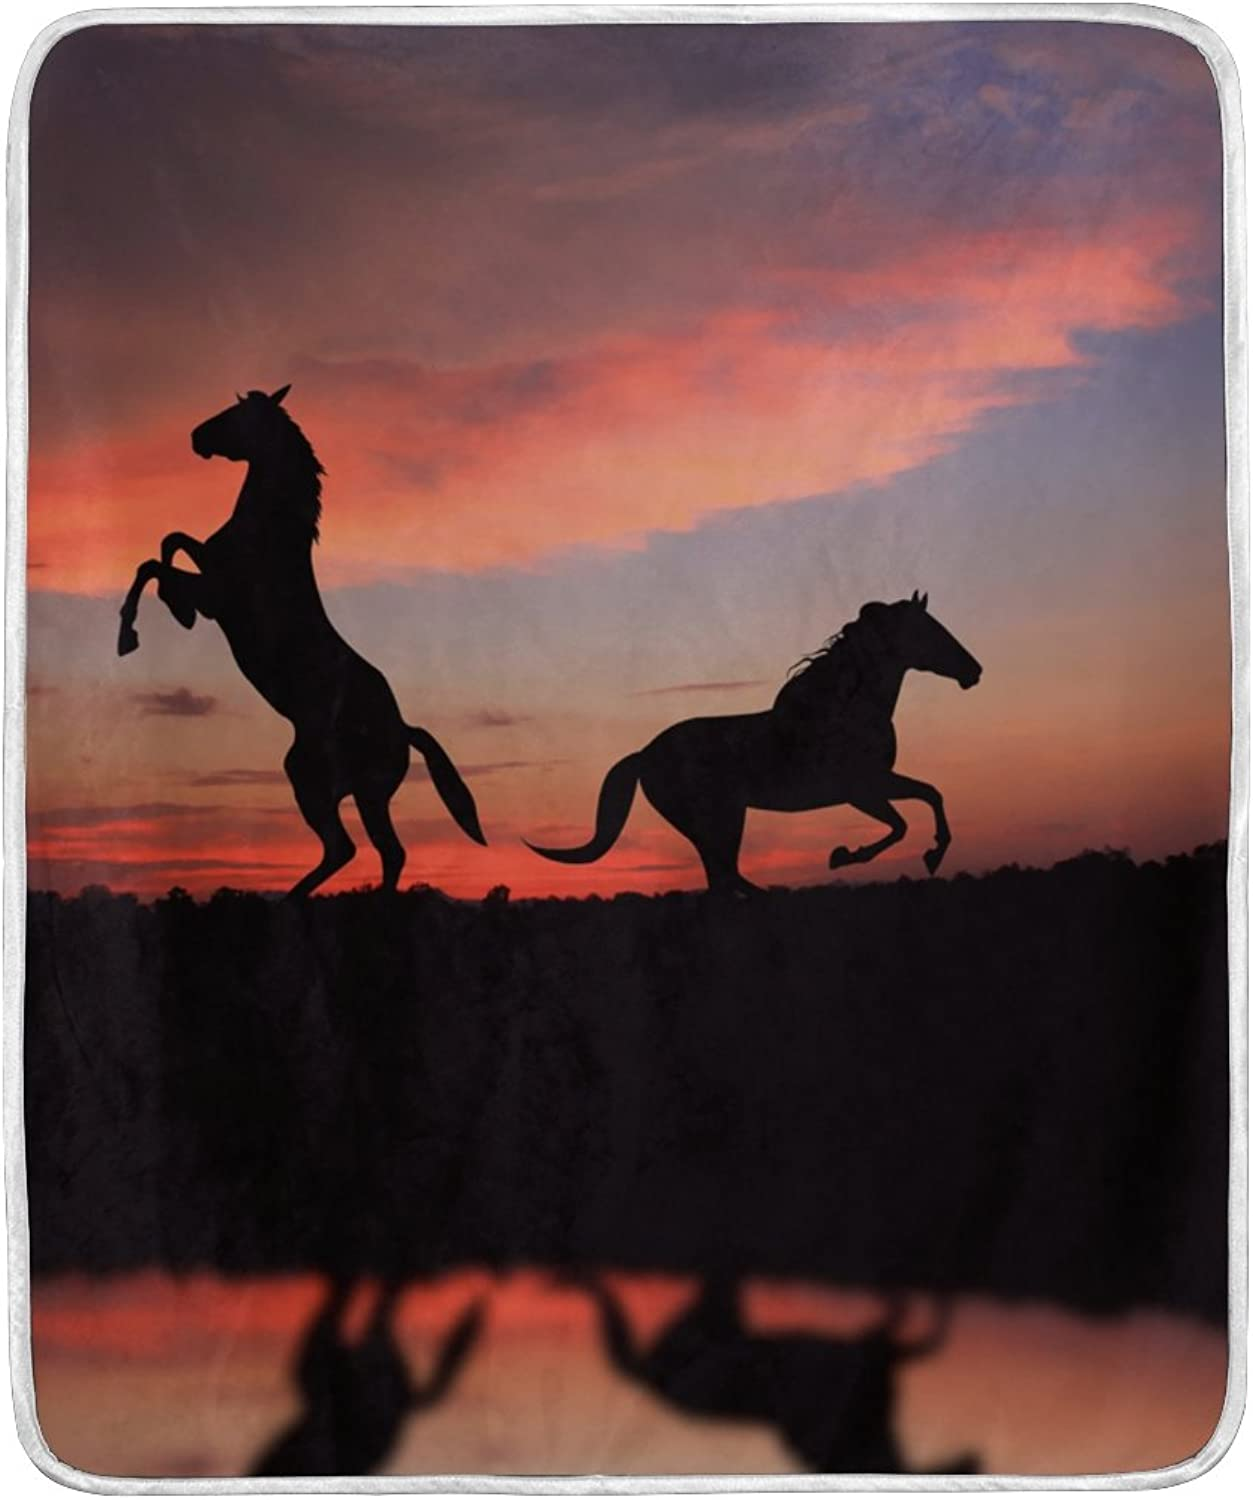 ALIREA Horse Over Sunset Super Soft Warm Blanket Lightweight Throw Blankets for Bed Couch Sofa Travelling Camping 60 x 50 Inch for Kids Boys Girls